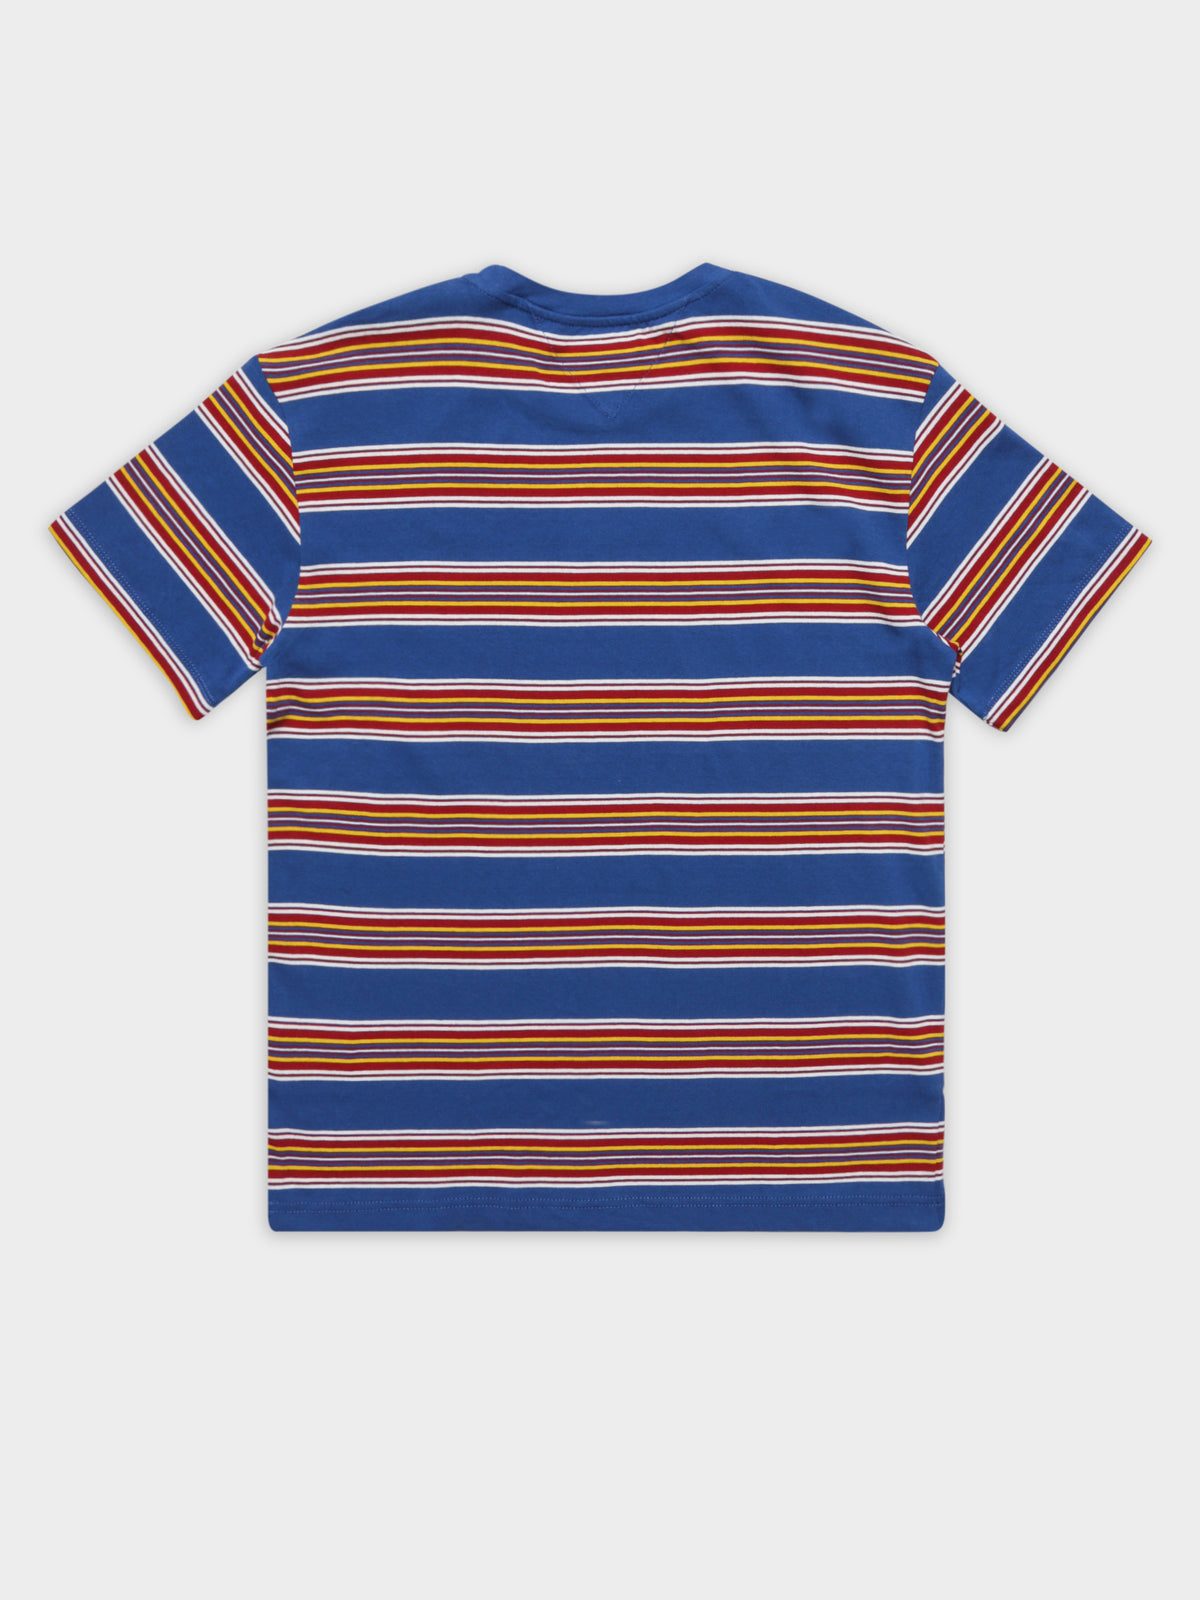 Stripe Layout T-Shirt in Providence Blue